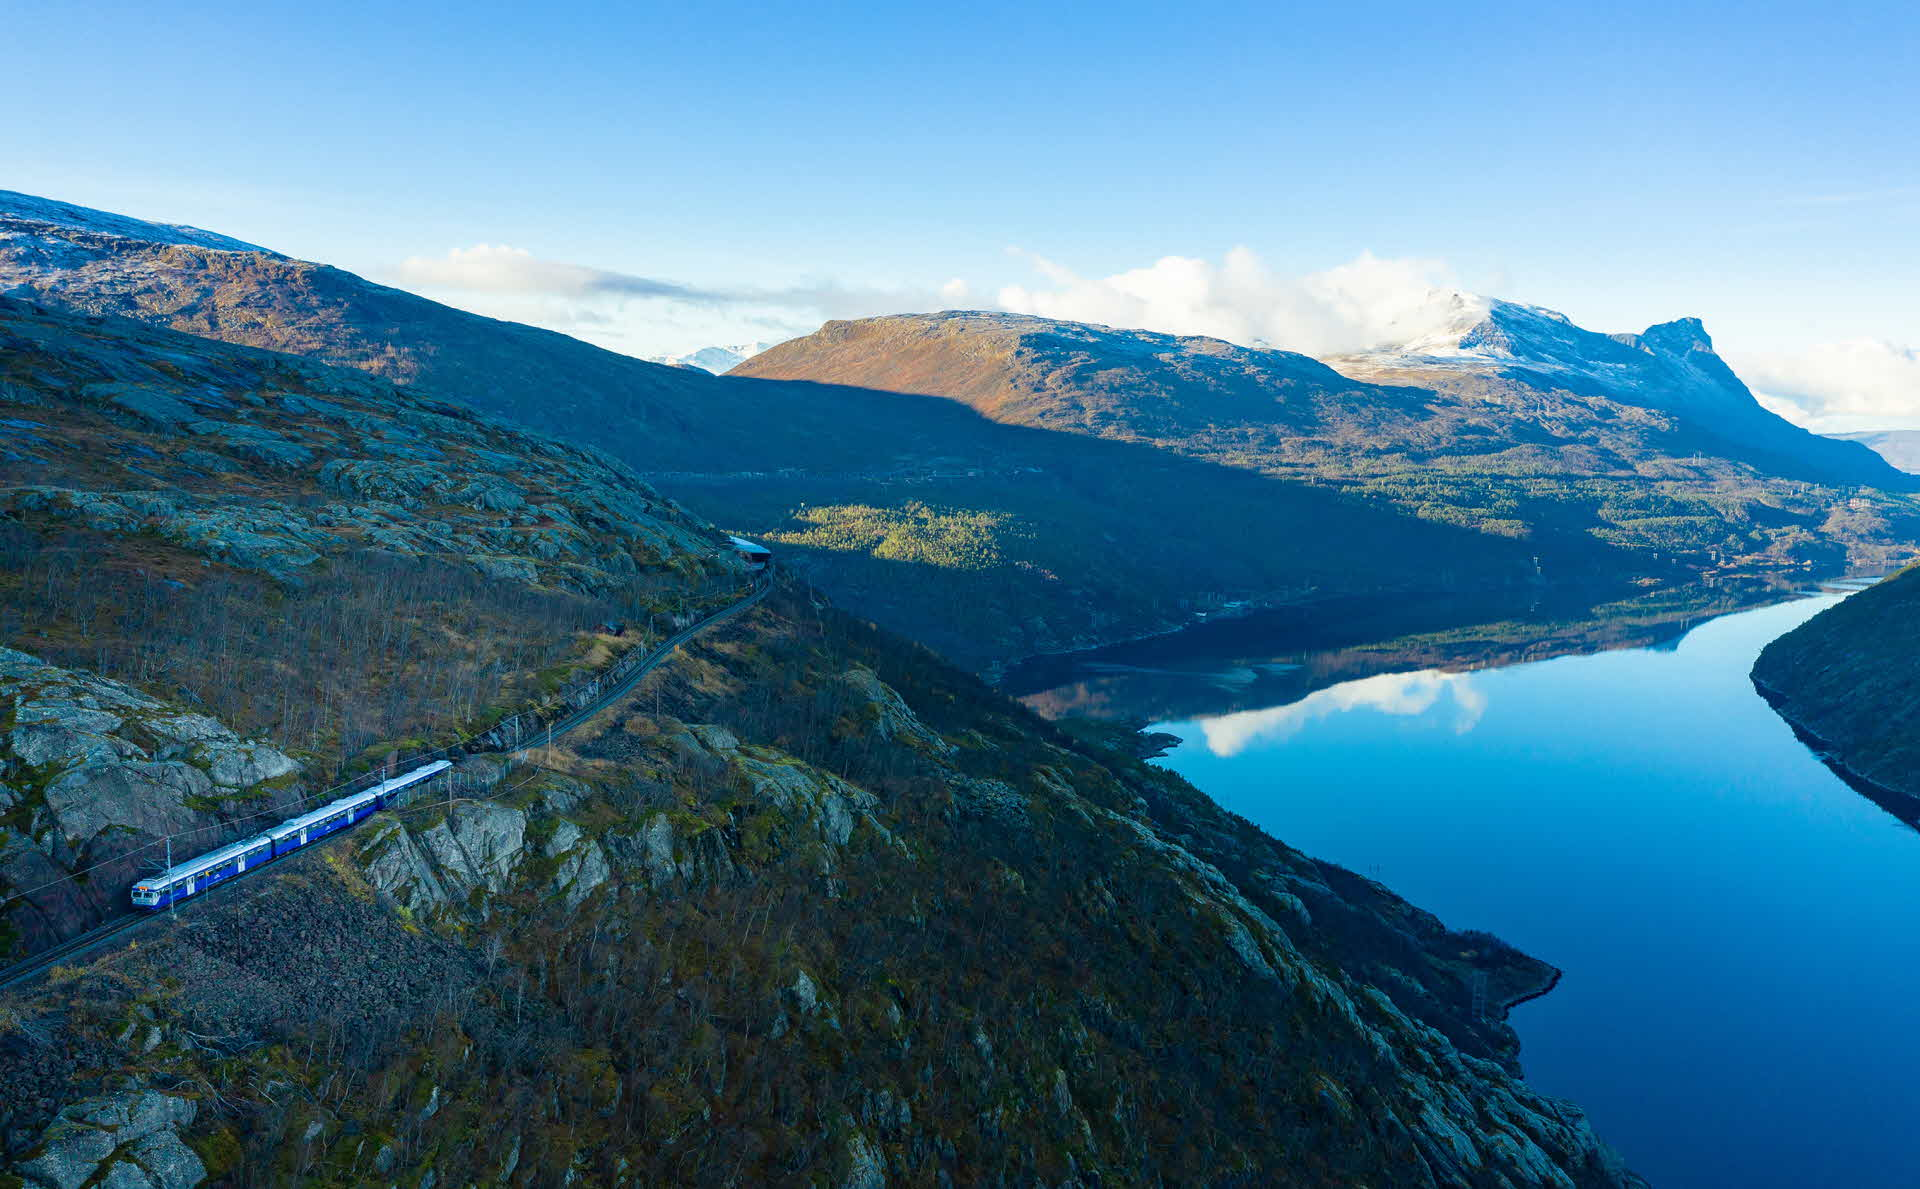 The blue 3 coach Acrtic Train snails up the mountain in autumn by the still Rombaksfjord far below in Narvik Norway